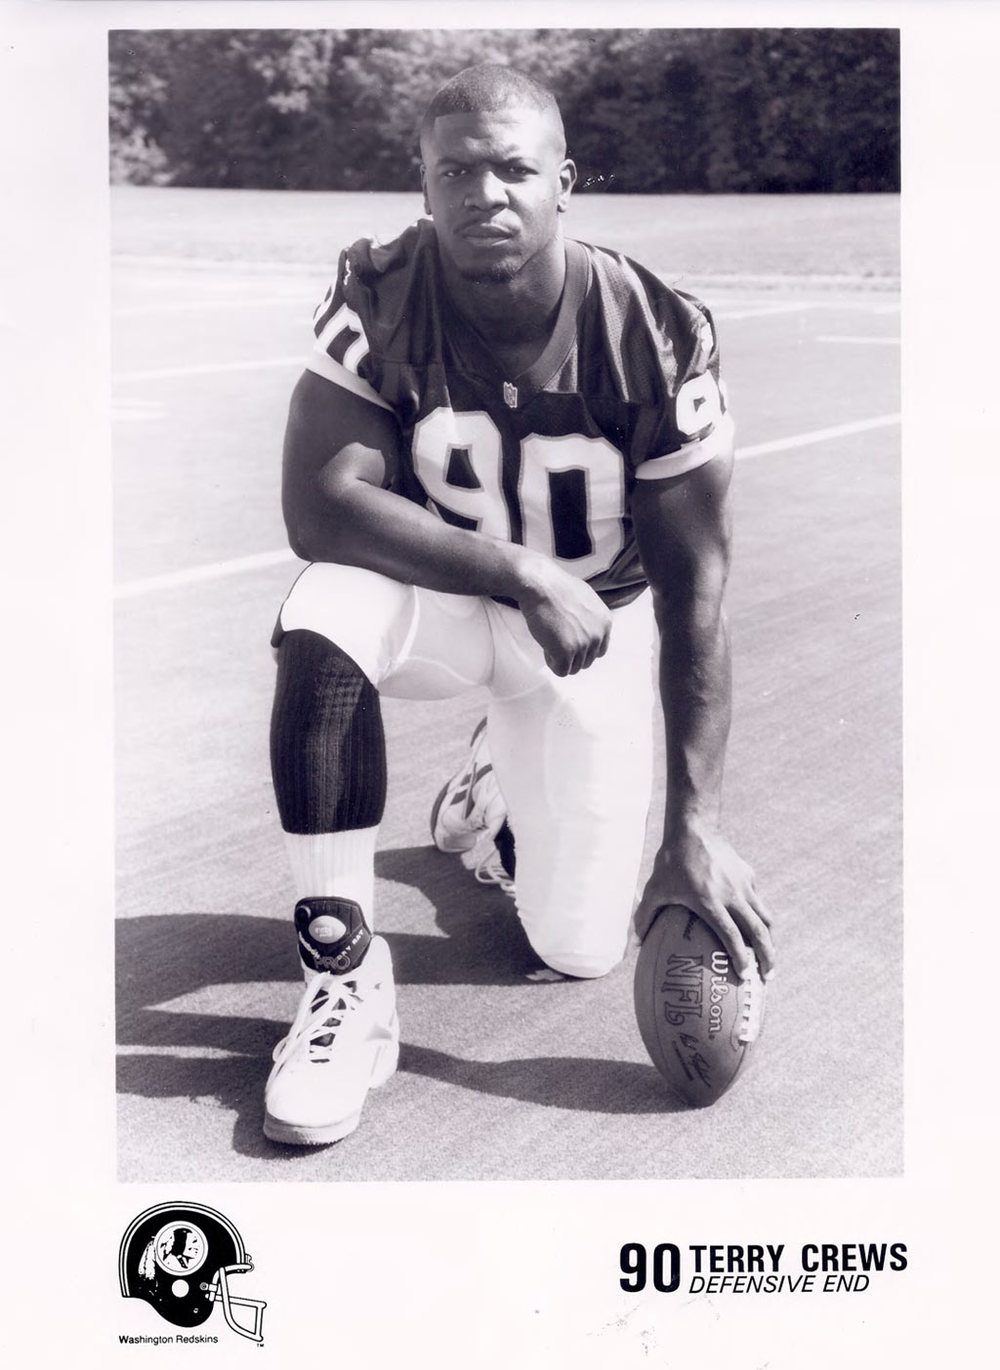 A young Terry Crews in the NFL